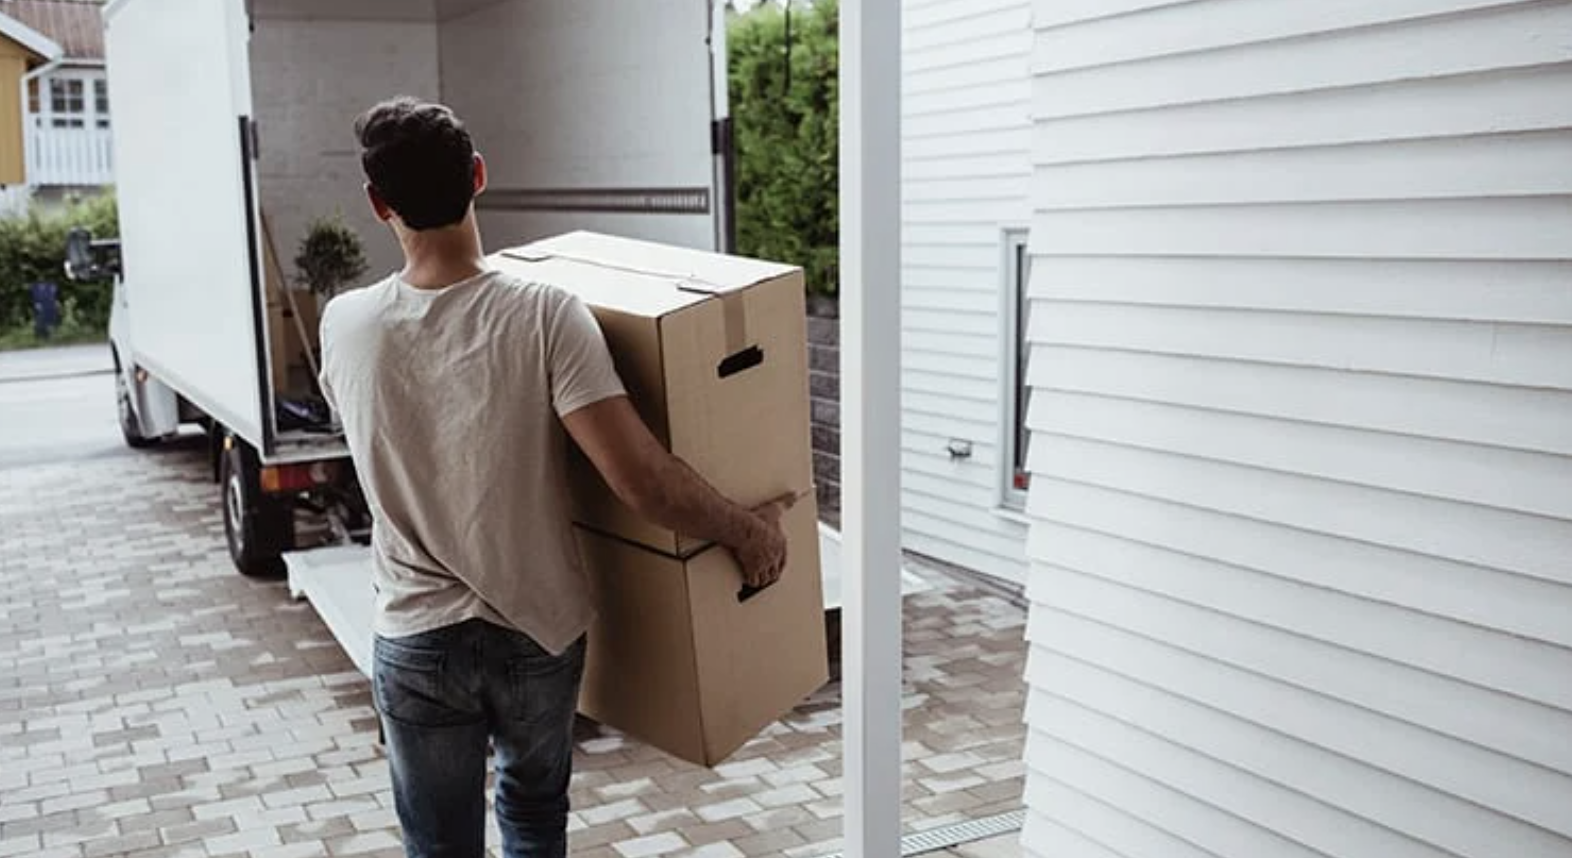 What is Motivating People to Move Right Now?